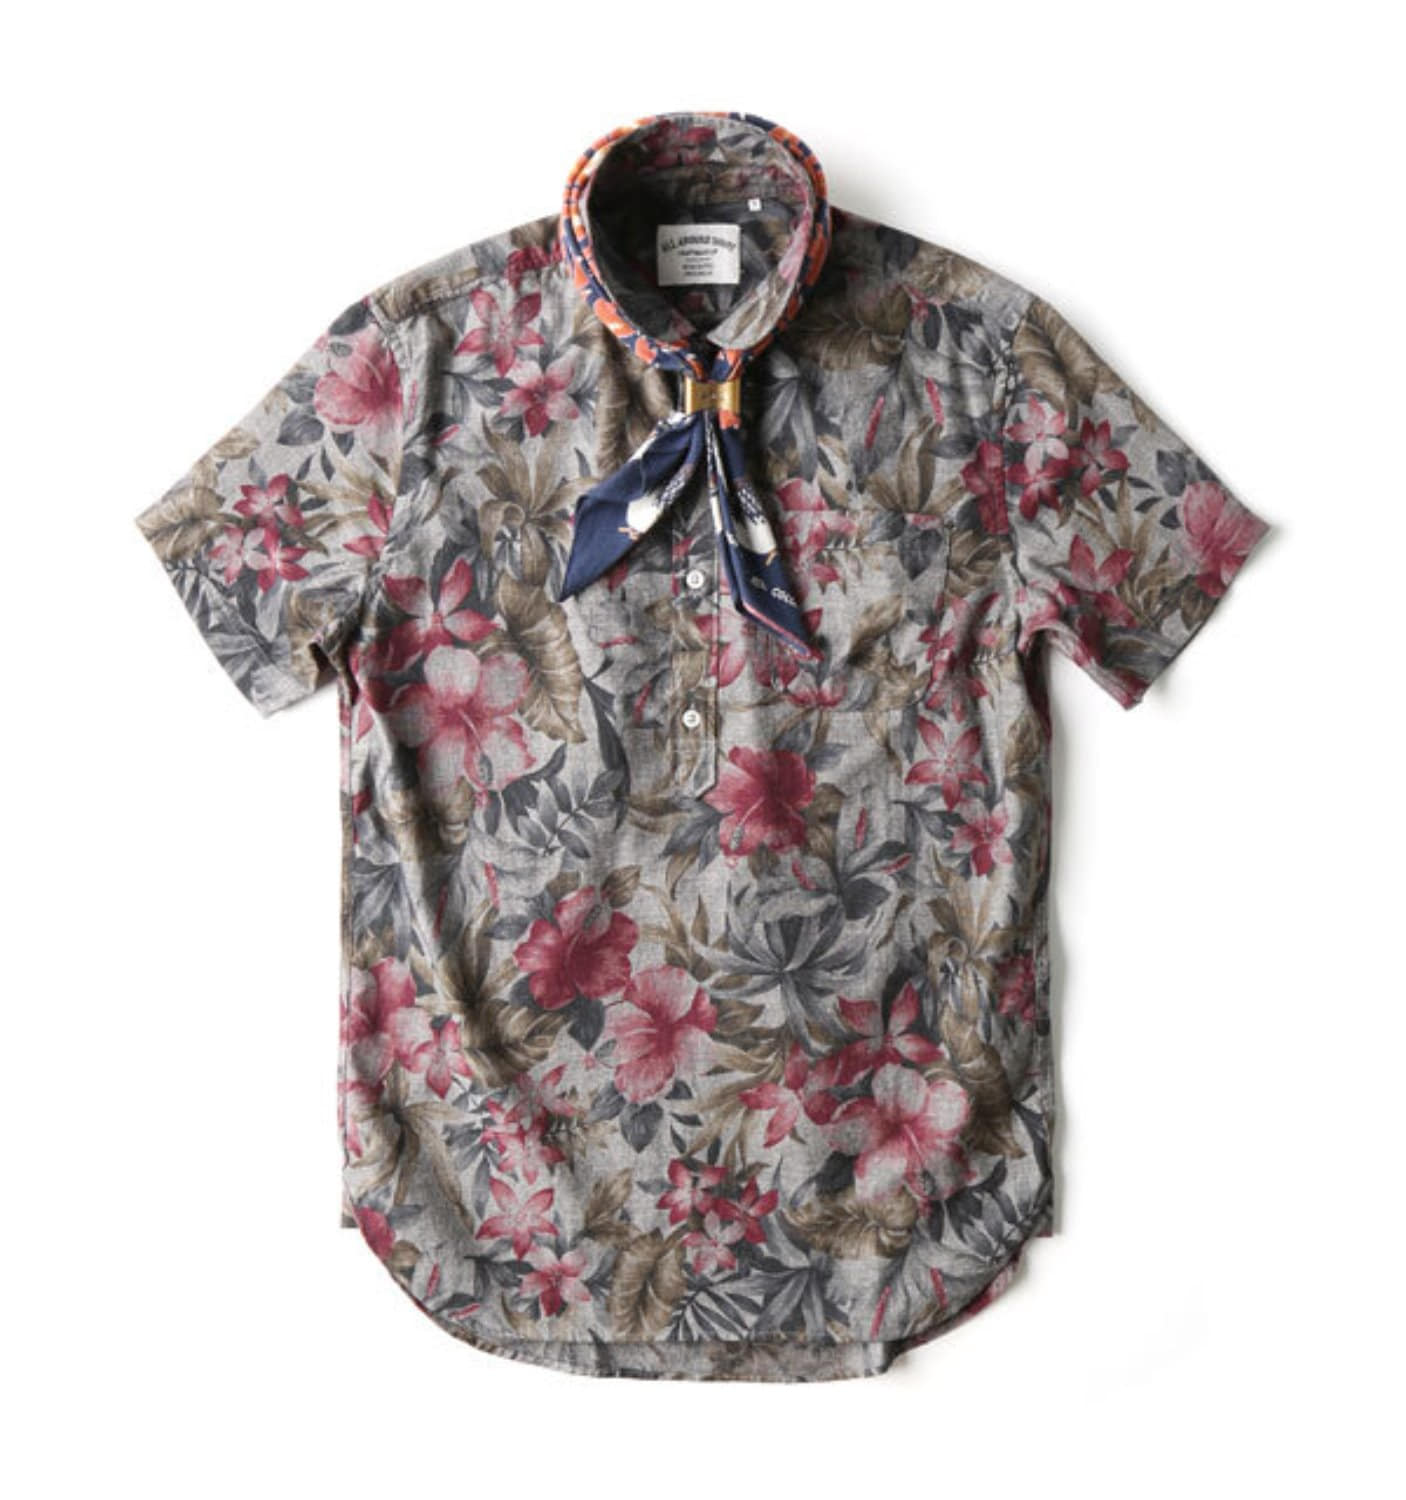 BAS02 GREY/KHAKI OXFORD HAWAIIAN SHIRT